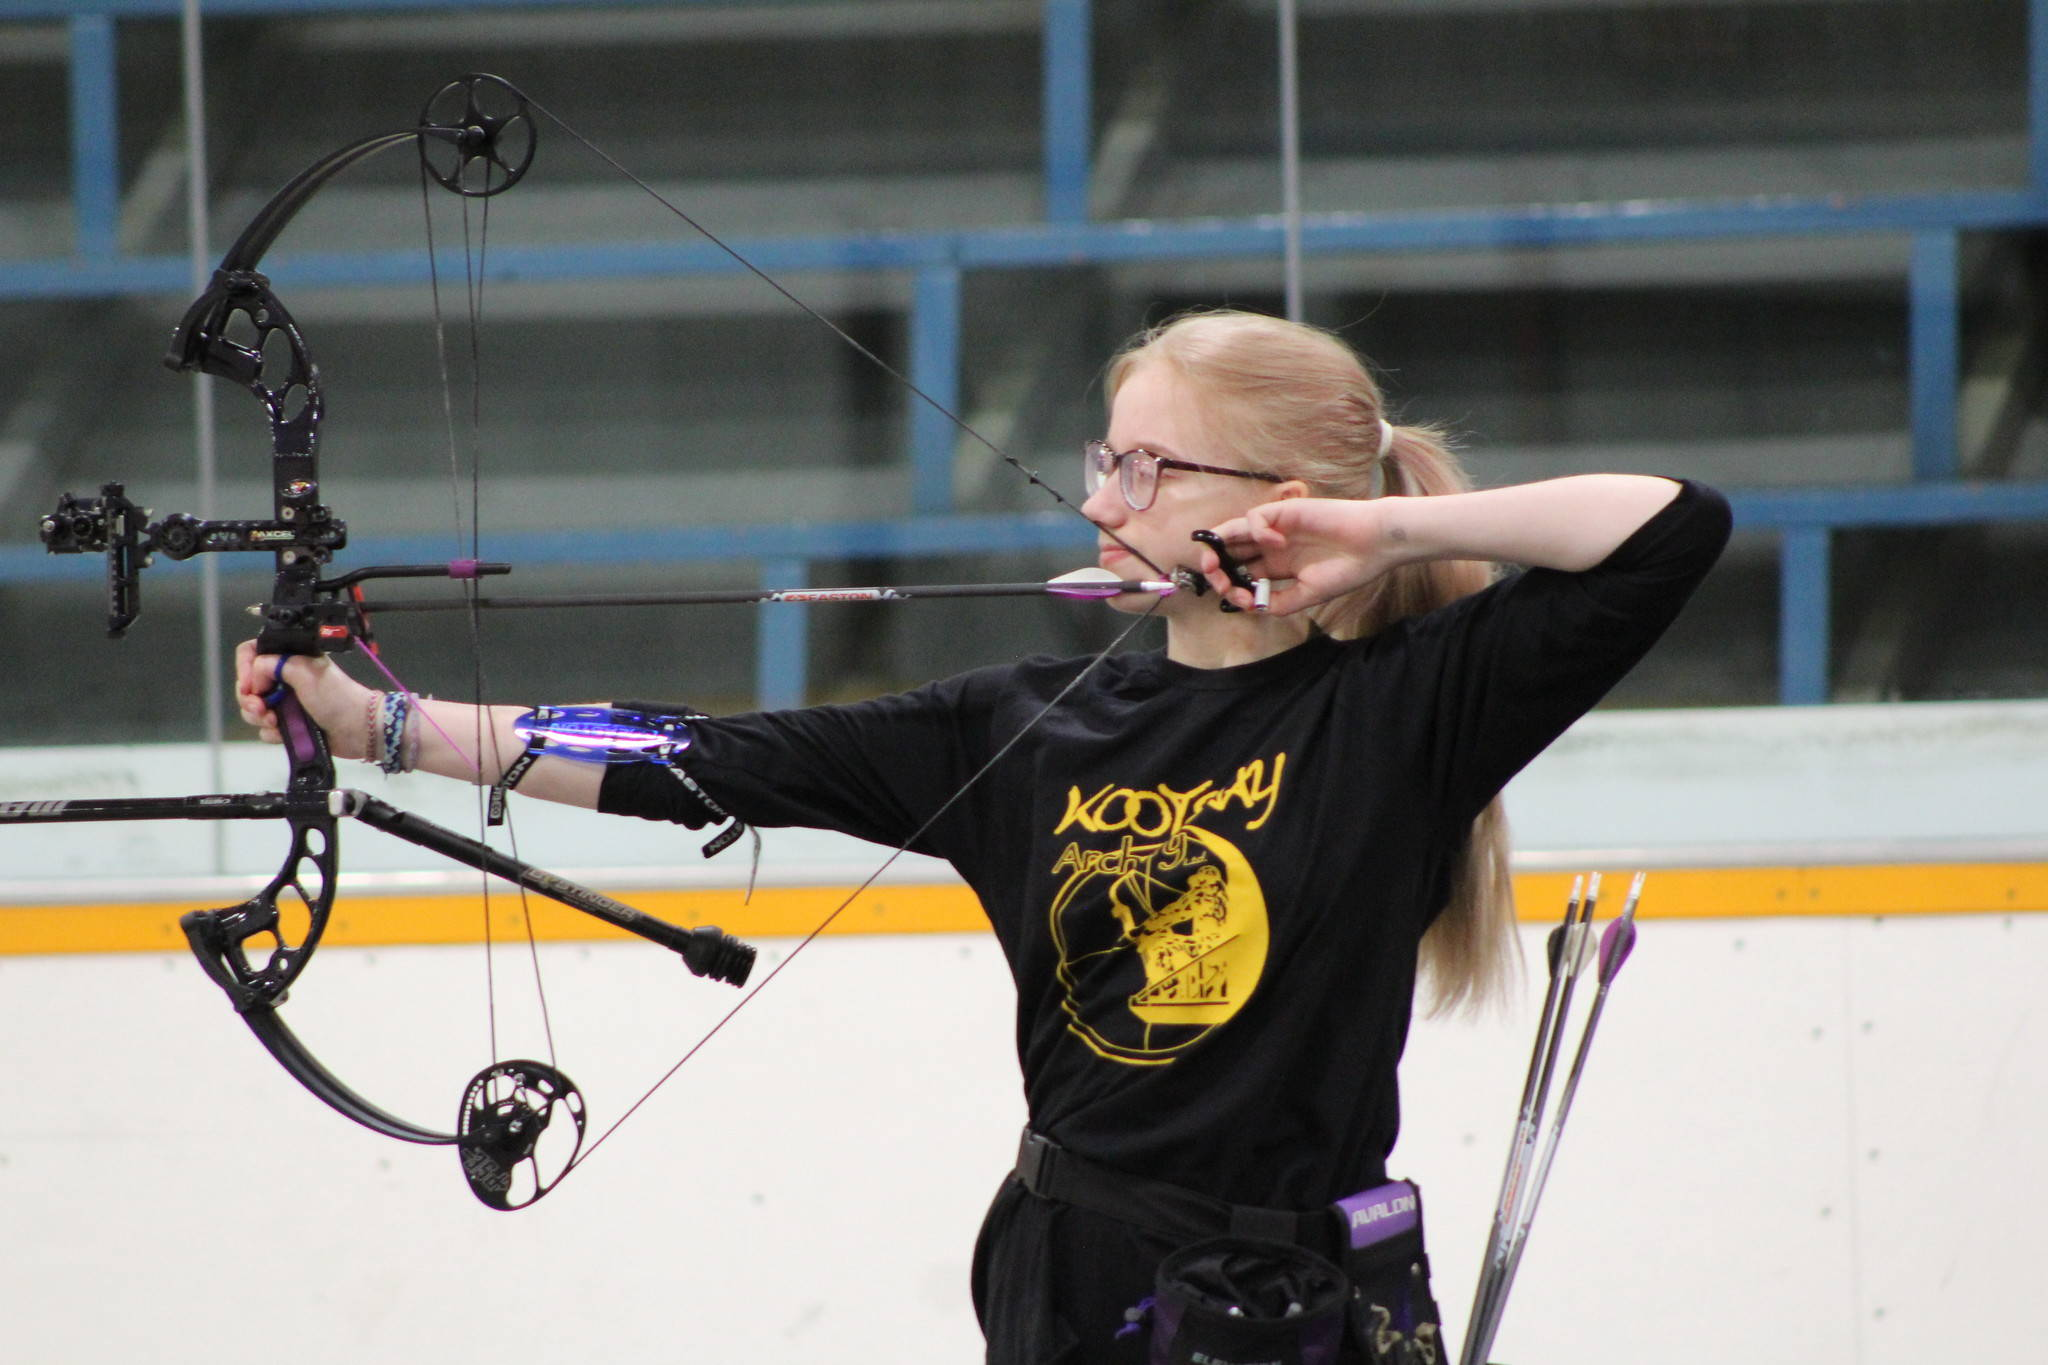 Athletes compete at the 2020 BC Winter Games in Fort St. John on Sunday, Feb. 23, 2020. (BC Games)